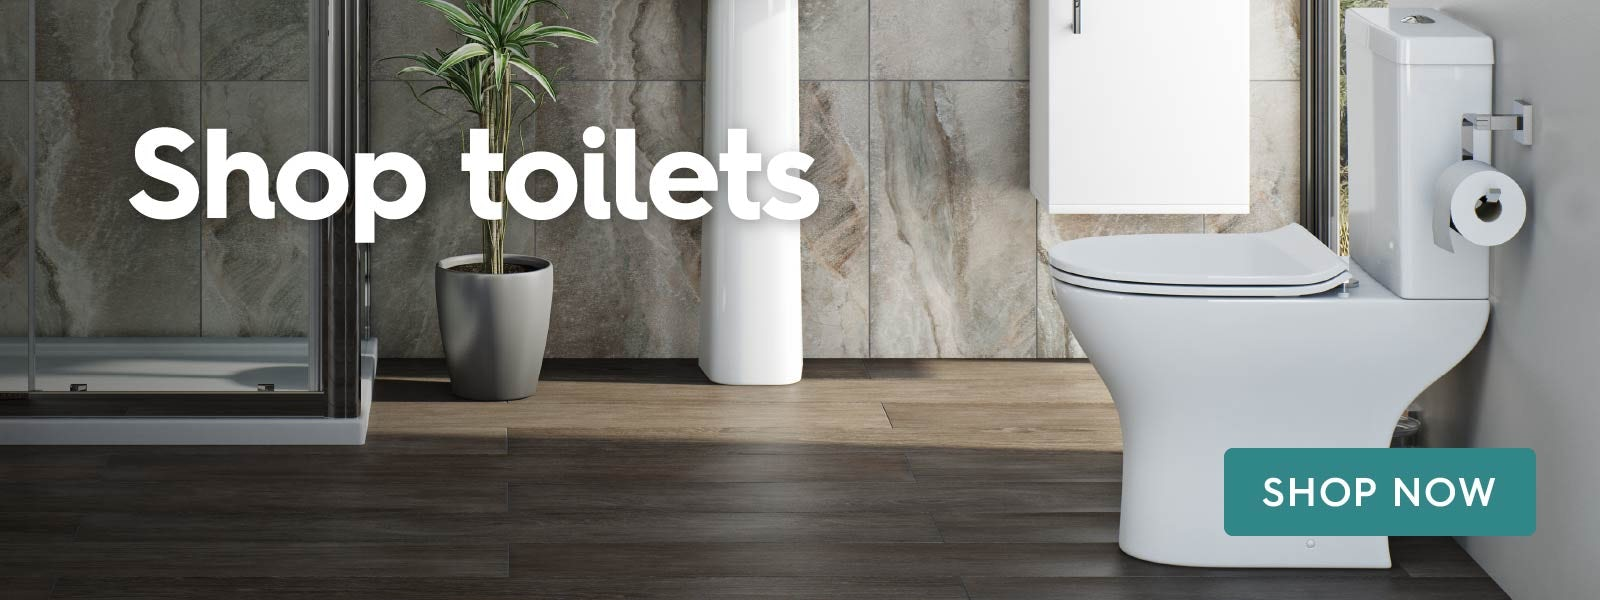 Shop toilets and accessories